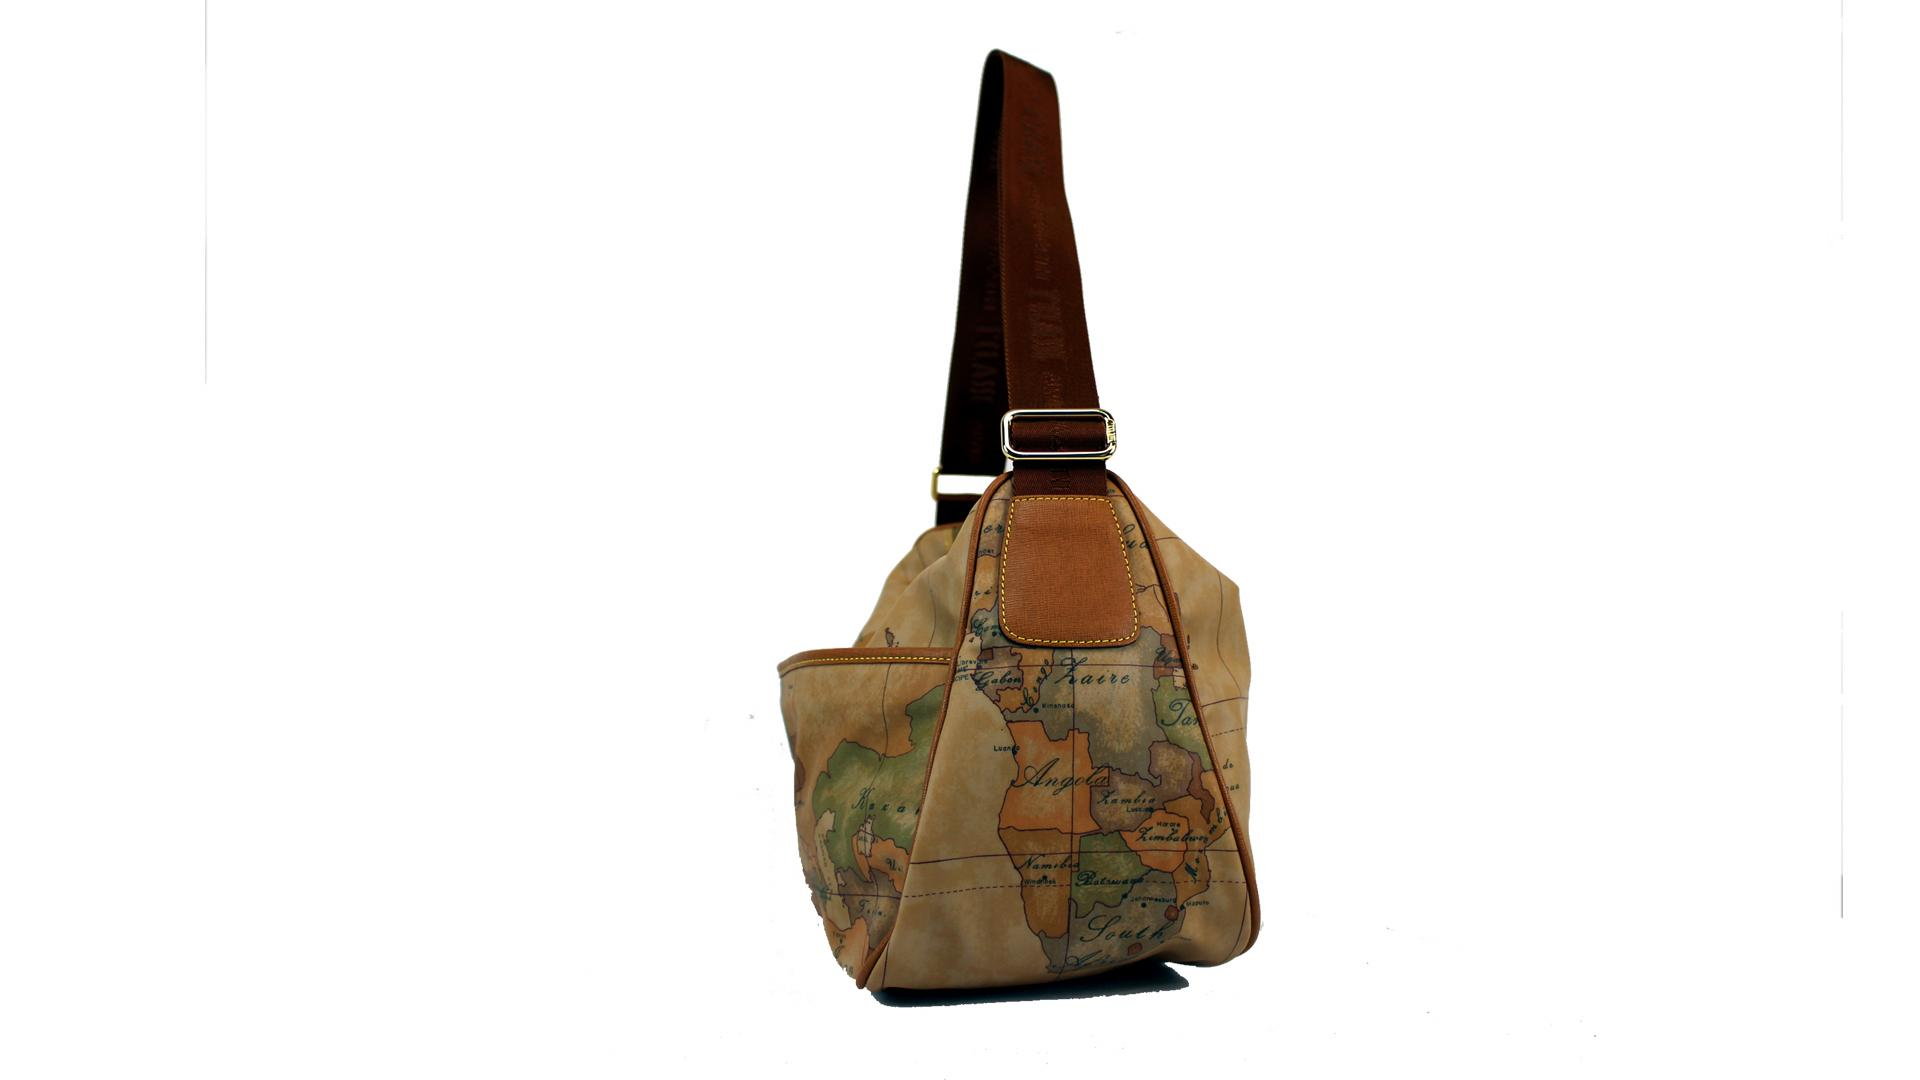 Shoulder bag  Alviero Martini 1A Classe Geo soft N509 6001 010 Classico